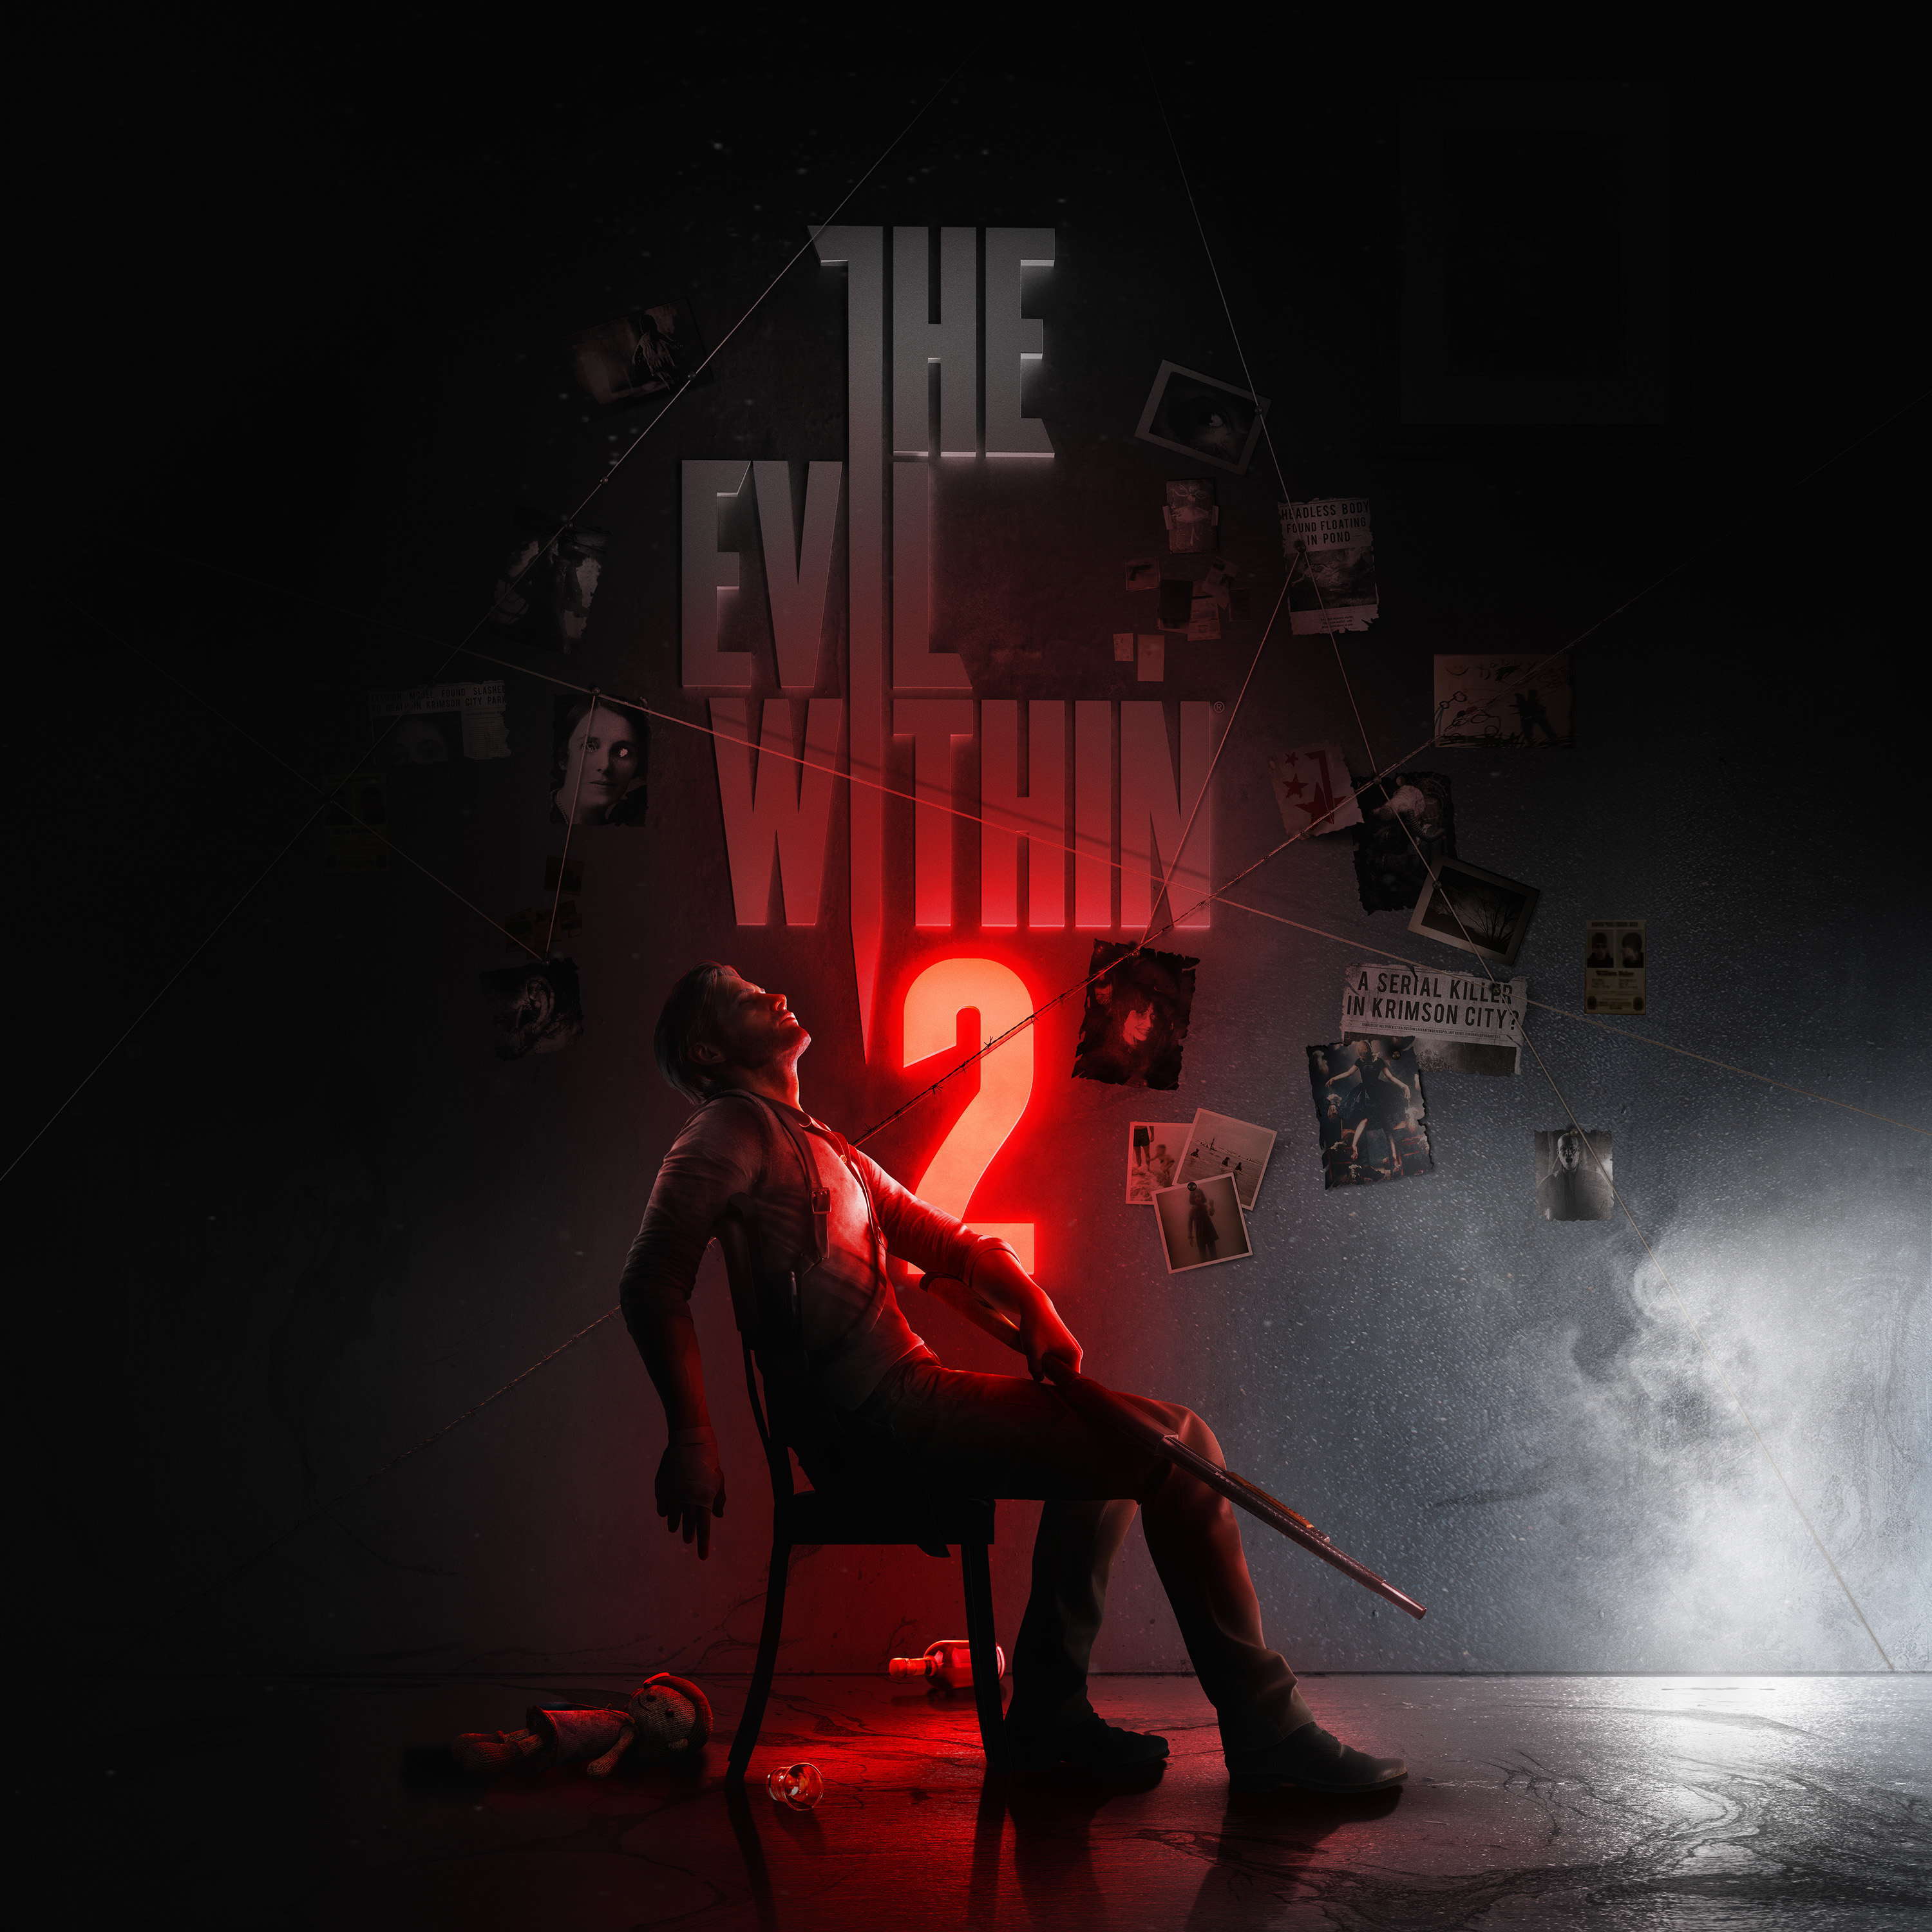 Thumbnail for The Evil Within 2 - Visual Identity